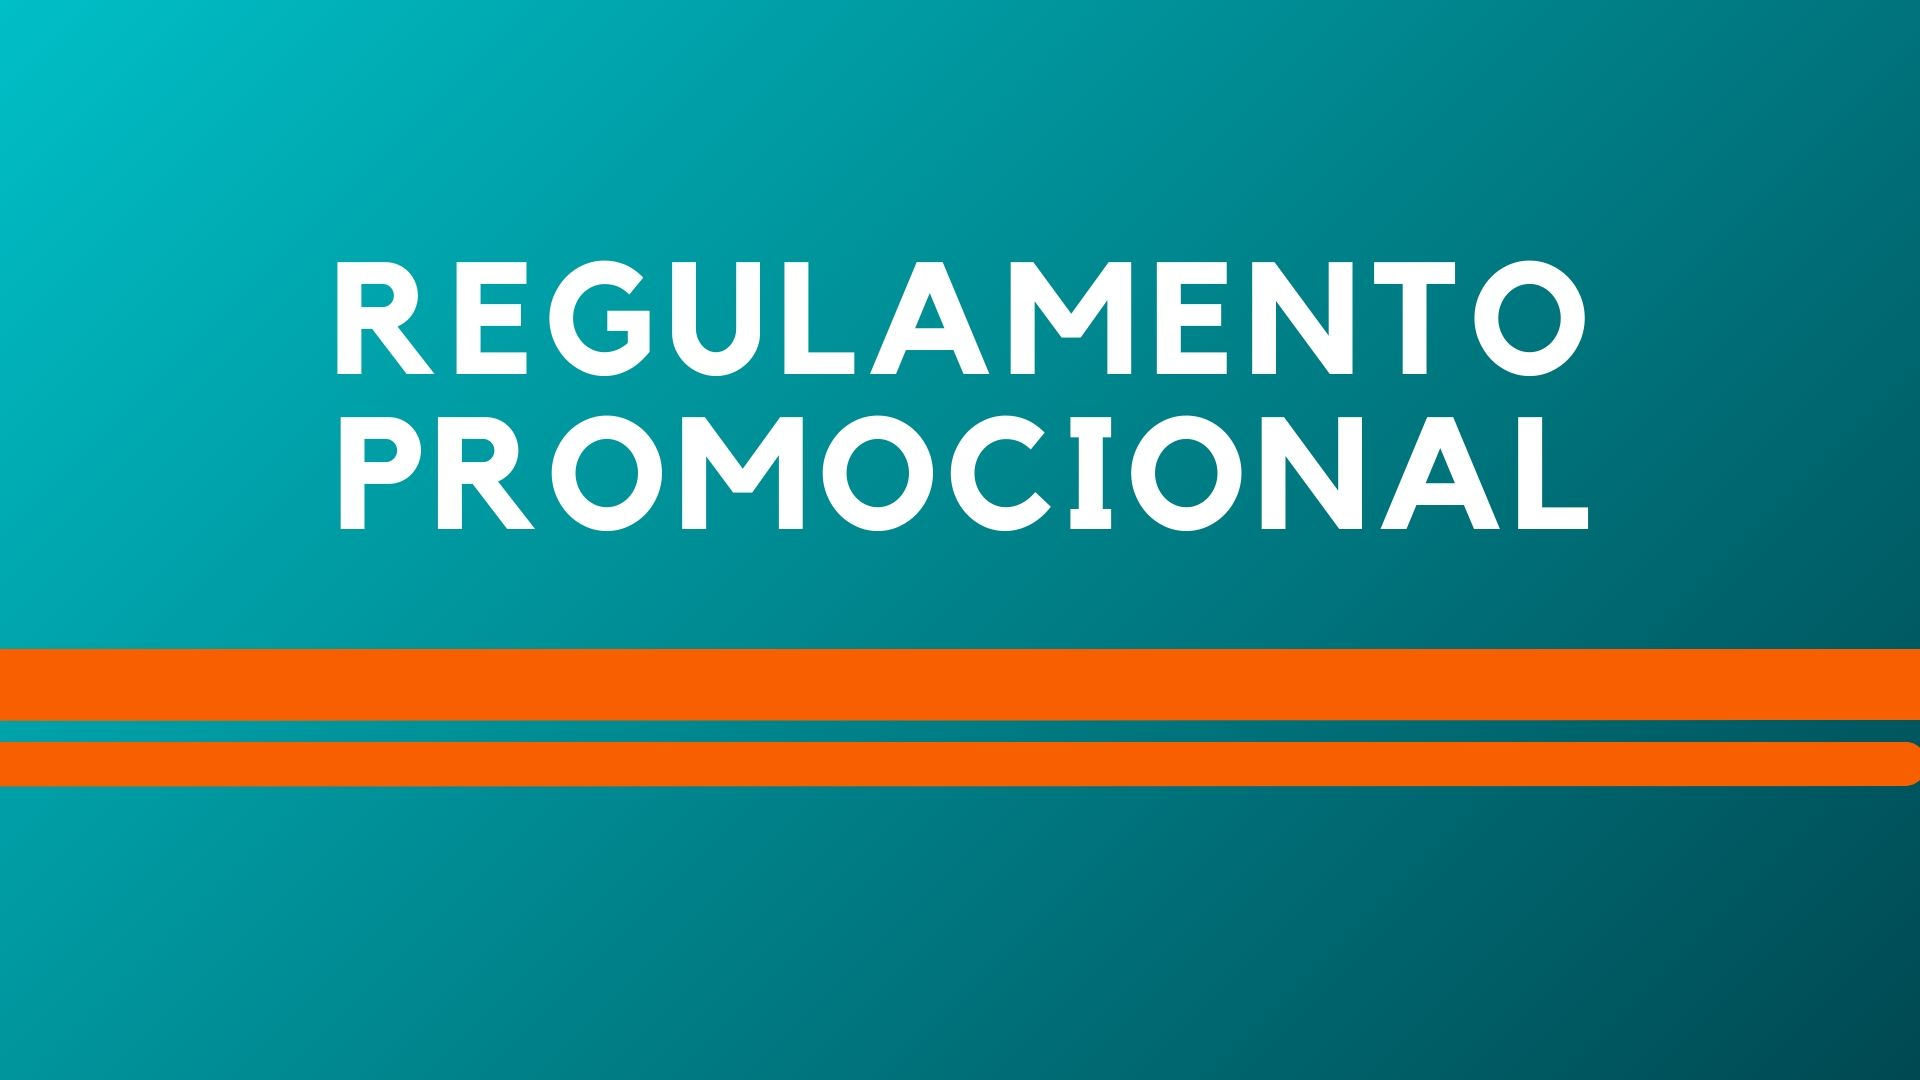 Regulamento Promocional